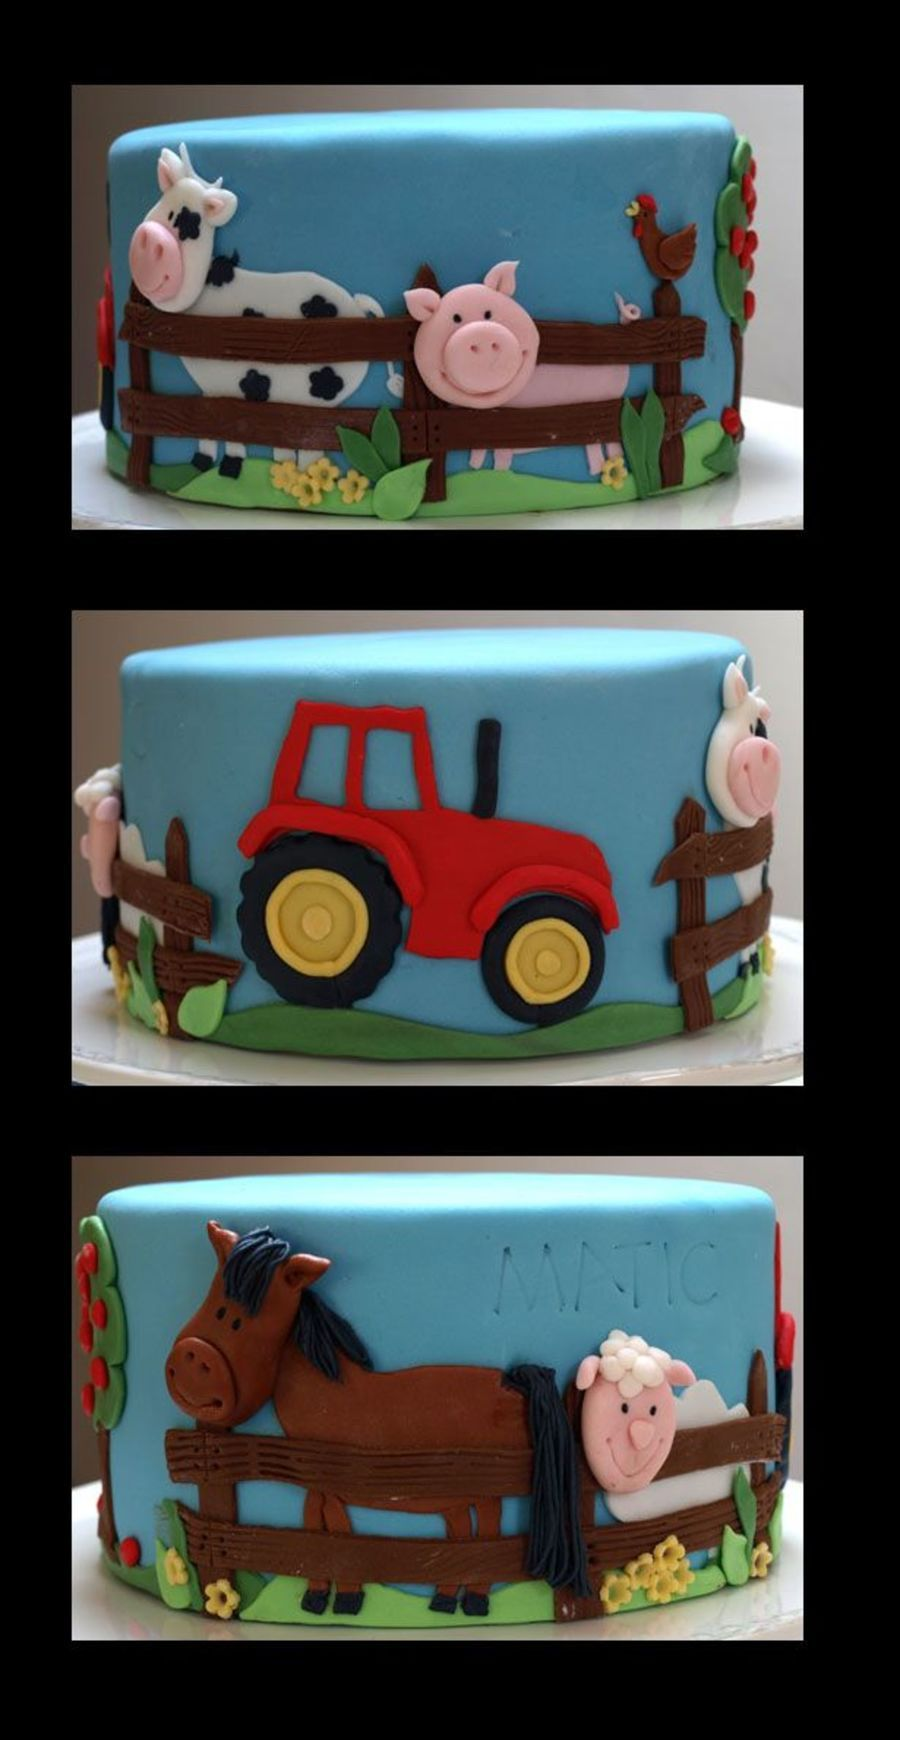 Farm Cake Chocolate Cake With Chocolate Buttercream All Fondant Farm Cake Farm Birthday Cakes Farm Animal Birthday